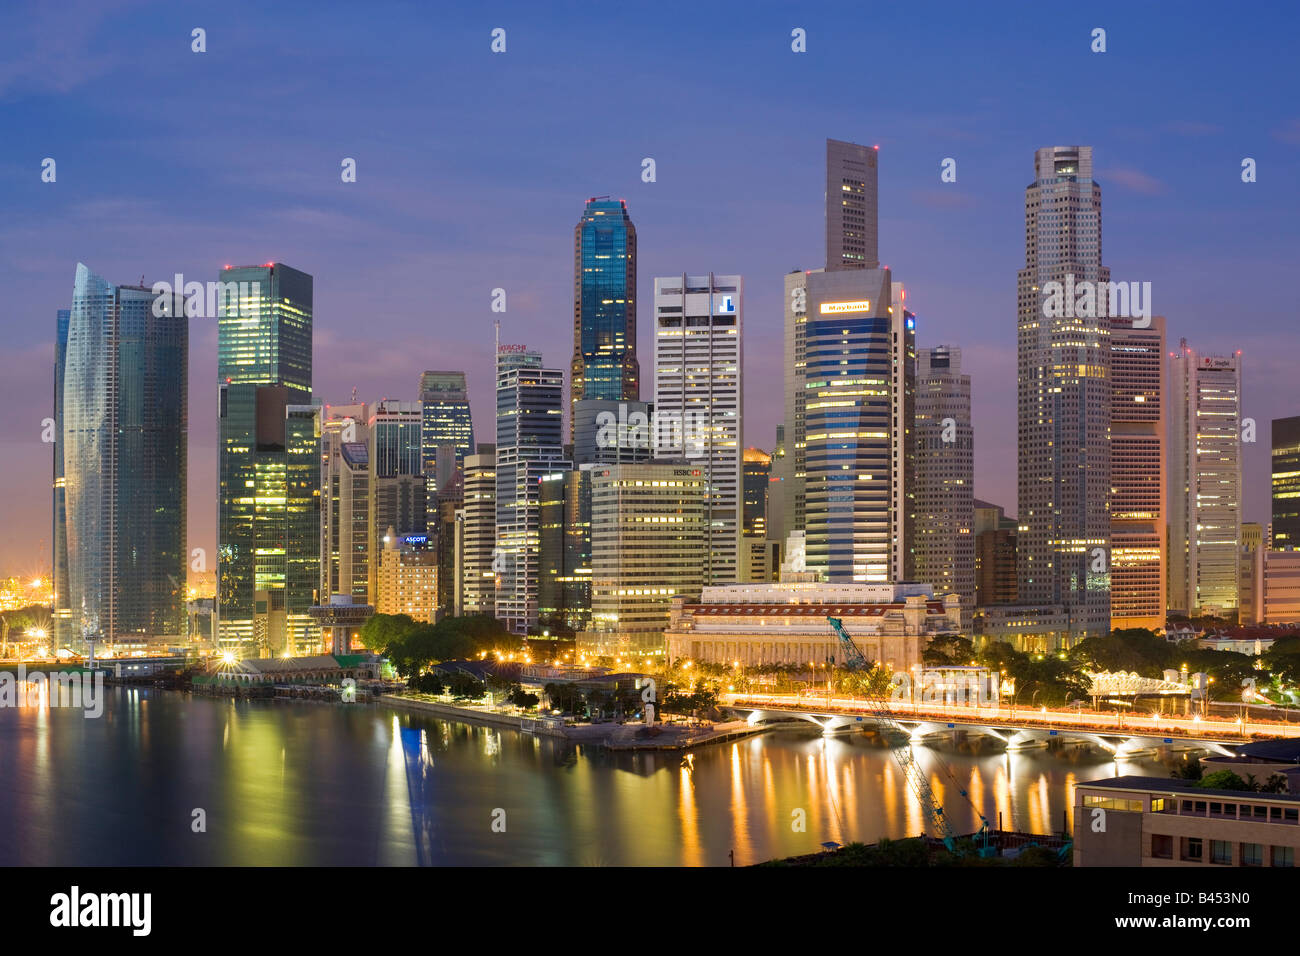 Skyline von Singapur betrachtet in der Morgendämmerung Stockbild